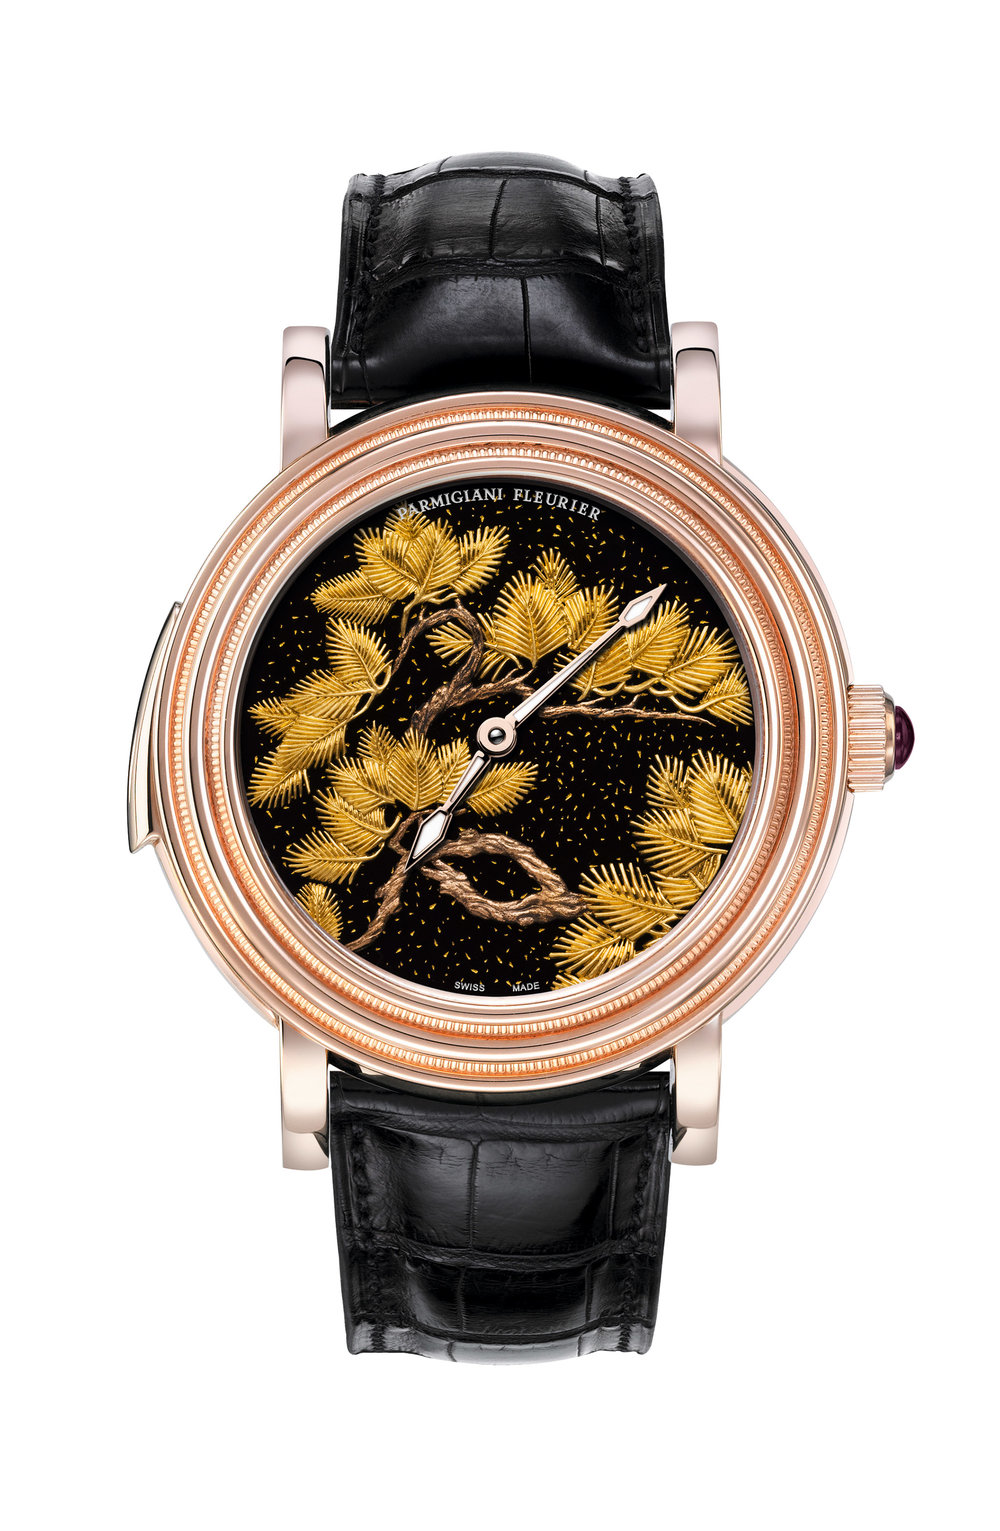 "Parmigiani  Toric Quaestor Watch Ref. PFH437-1001400-HA1441, $595,000  Requiring more than 70 hours of work to complete, the elaborate dial of the Parmigiani Toric Quaestor Watch showcases an extraordinarily detailed pine tree, a symbol of vitality and eternity in Asian culture, in the Japanese Maki-e style: engraved in black mother of pearl and filled with 24k gold dust. ""Cathedral"" chimes add melodic dimension, with the rose-gold case forged to ensure perfect acoustics for the minute repeater chime. Water resistance to 10 metres. Power reserve 72 hours.  At Palladio, (604) 685-3885,  parmigiani.com"